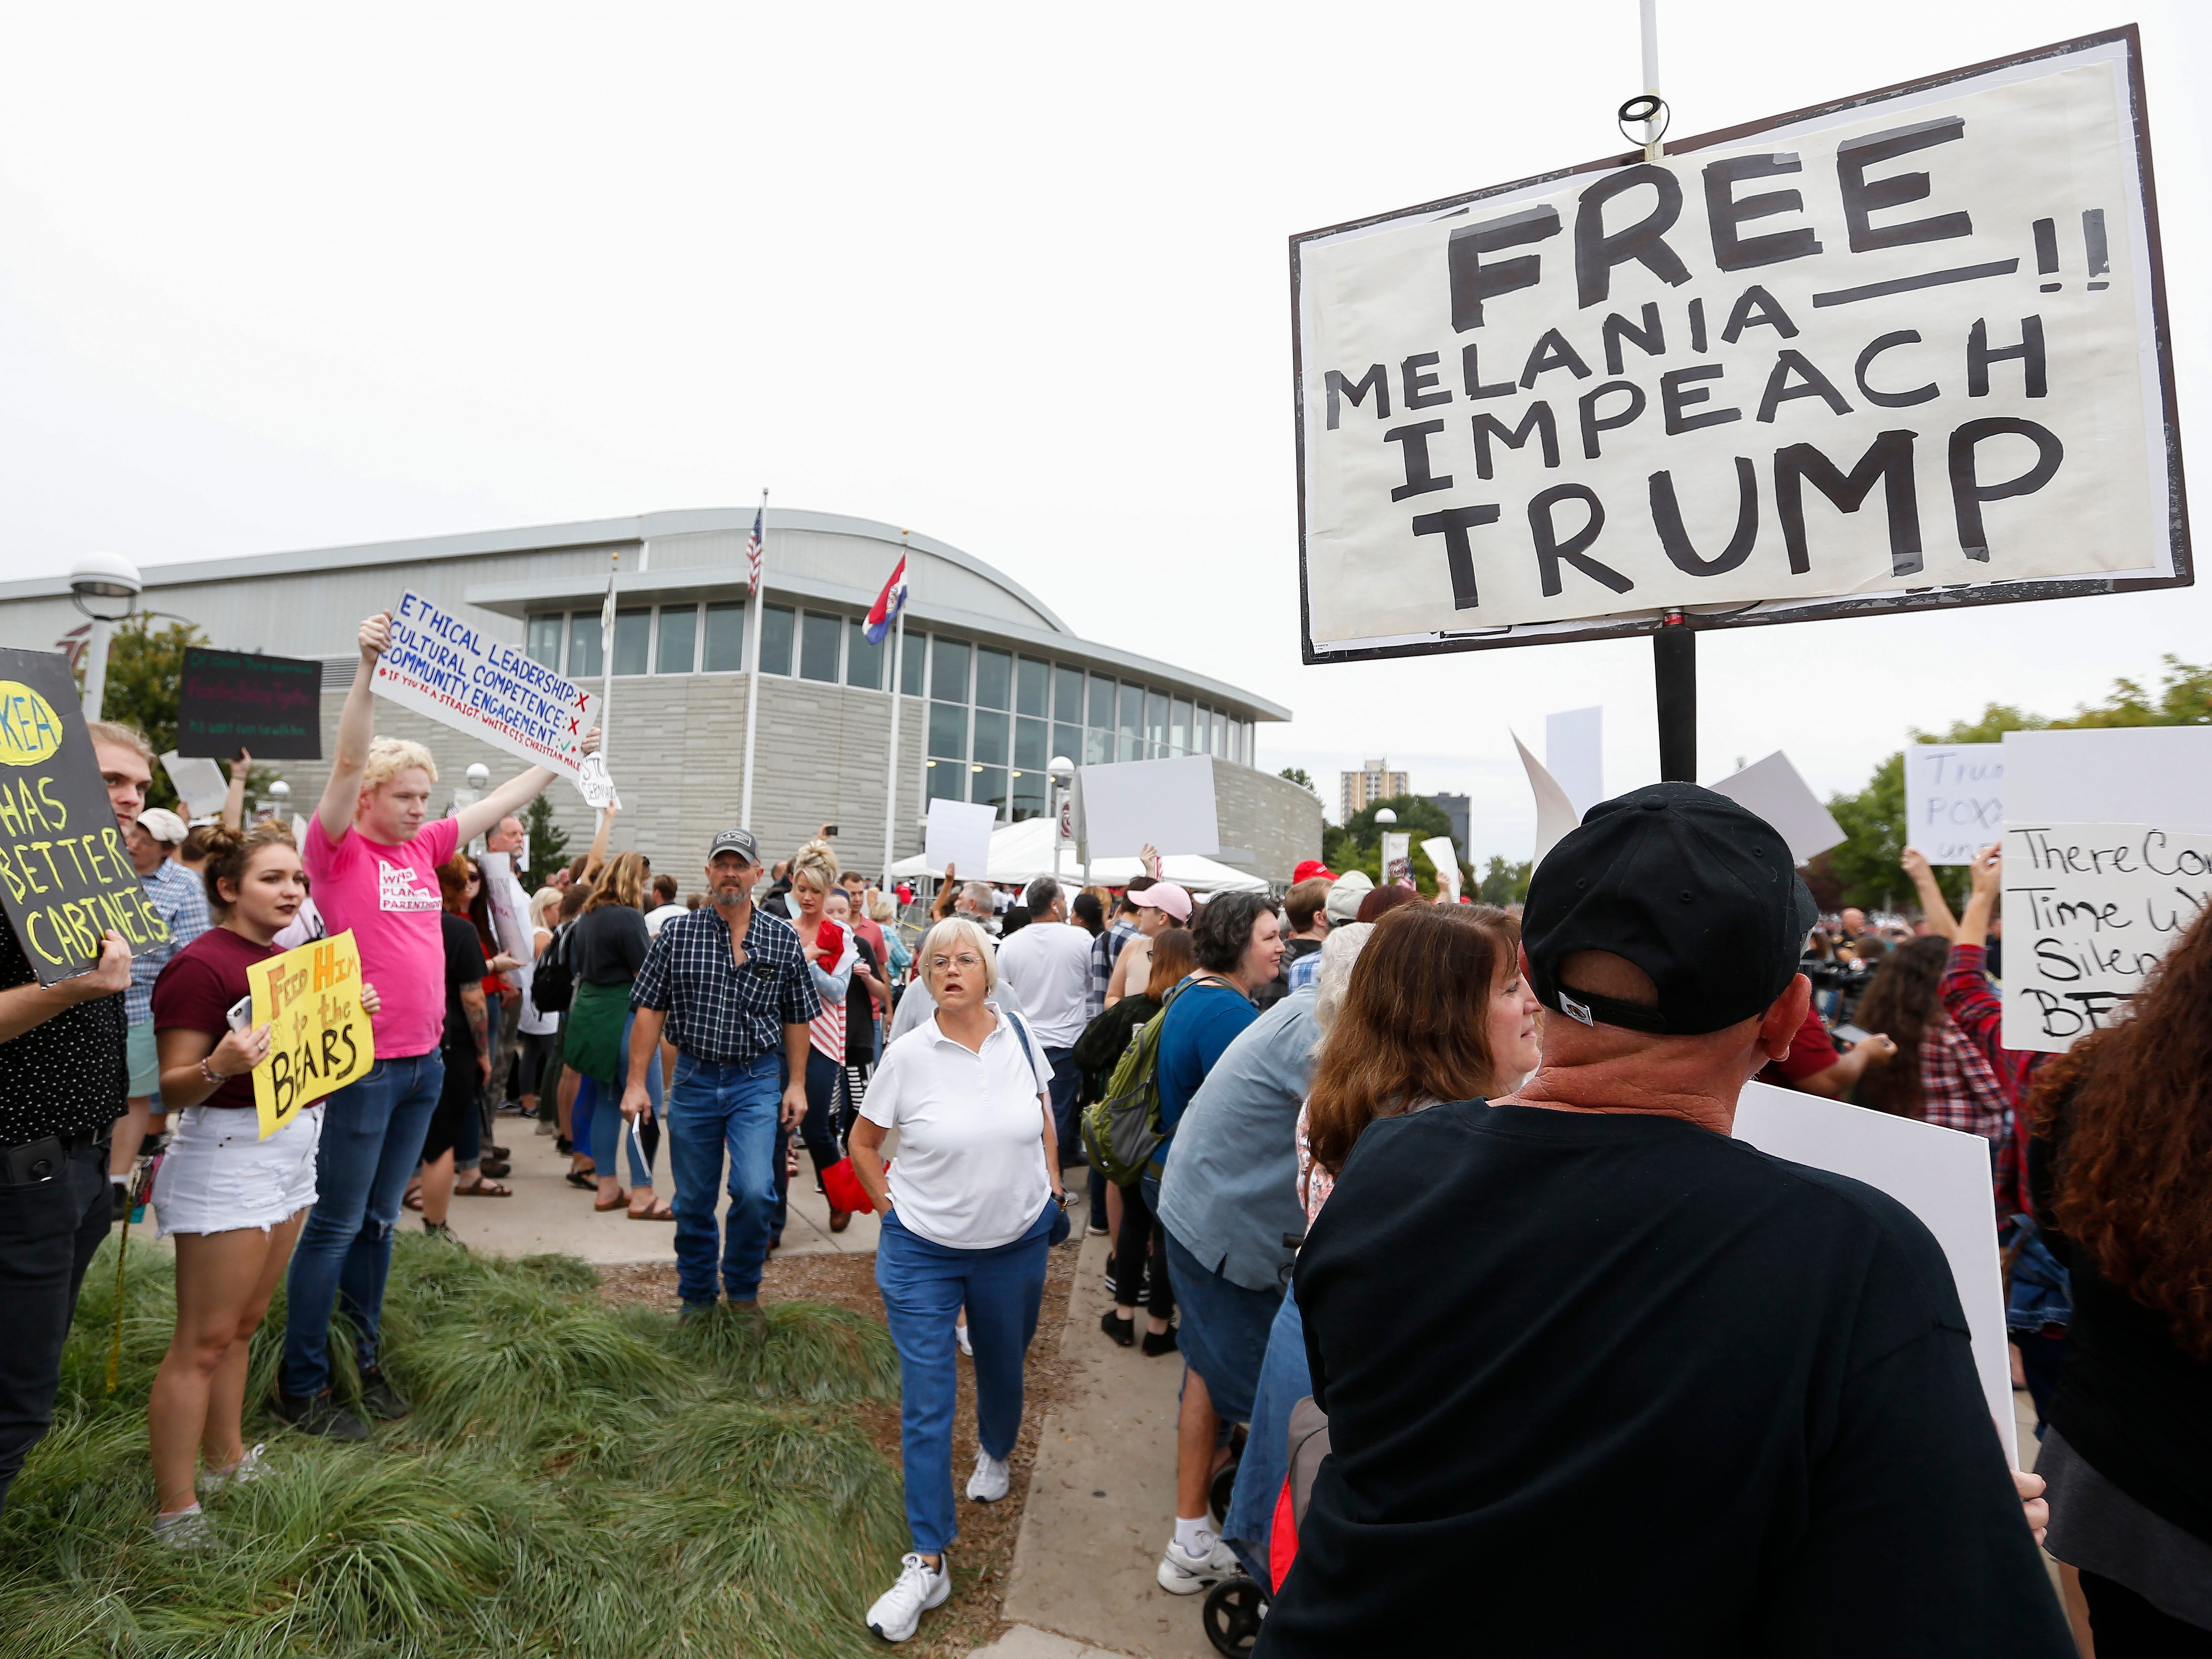 Scenes from protests outside of JQH Arena on the campus of Missouri State University where President Donald Trump was speaking on Friday, Sep. 21, 2018.